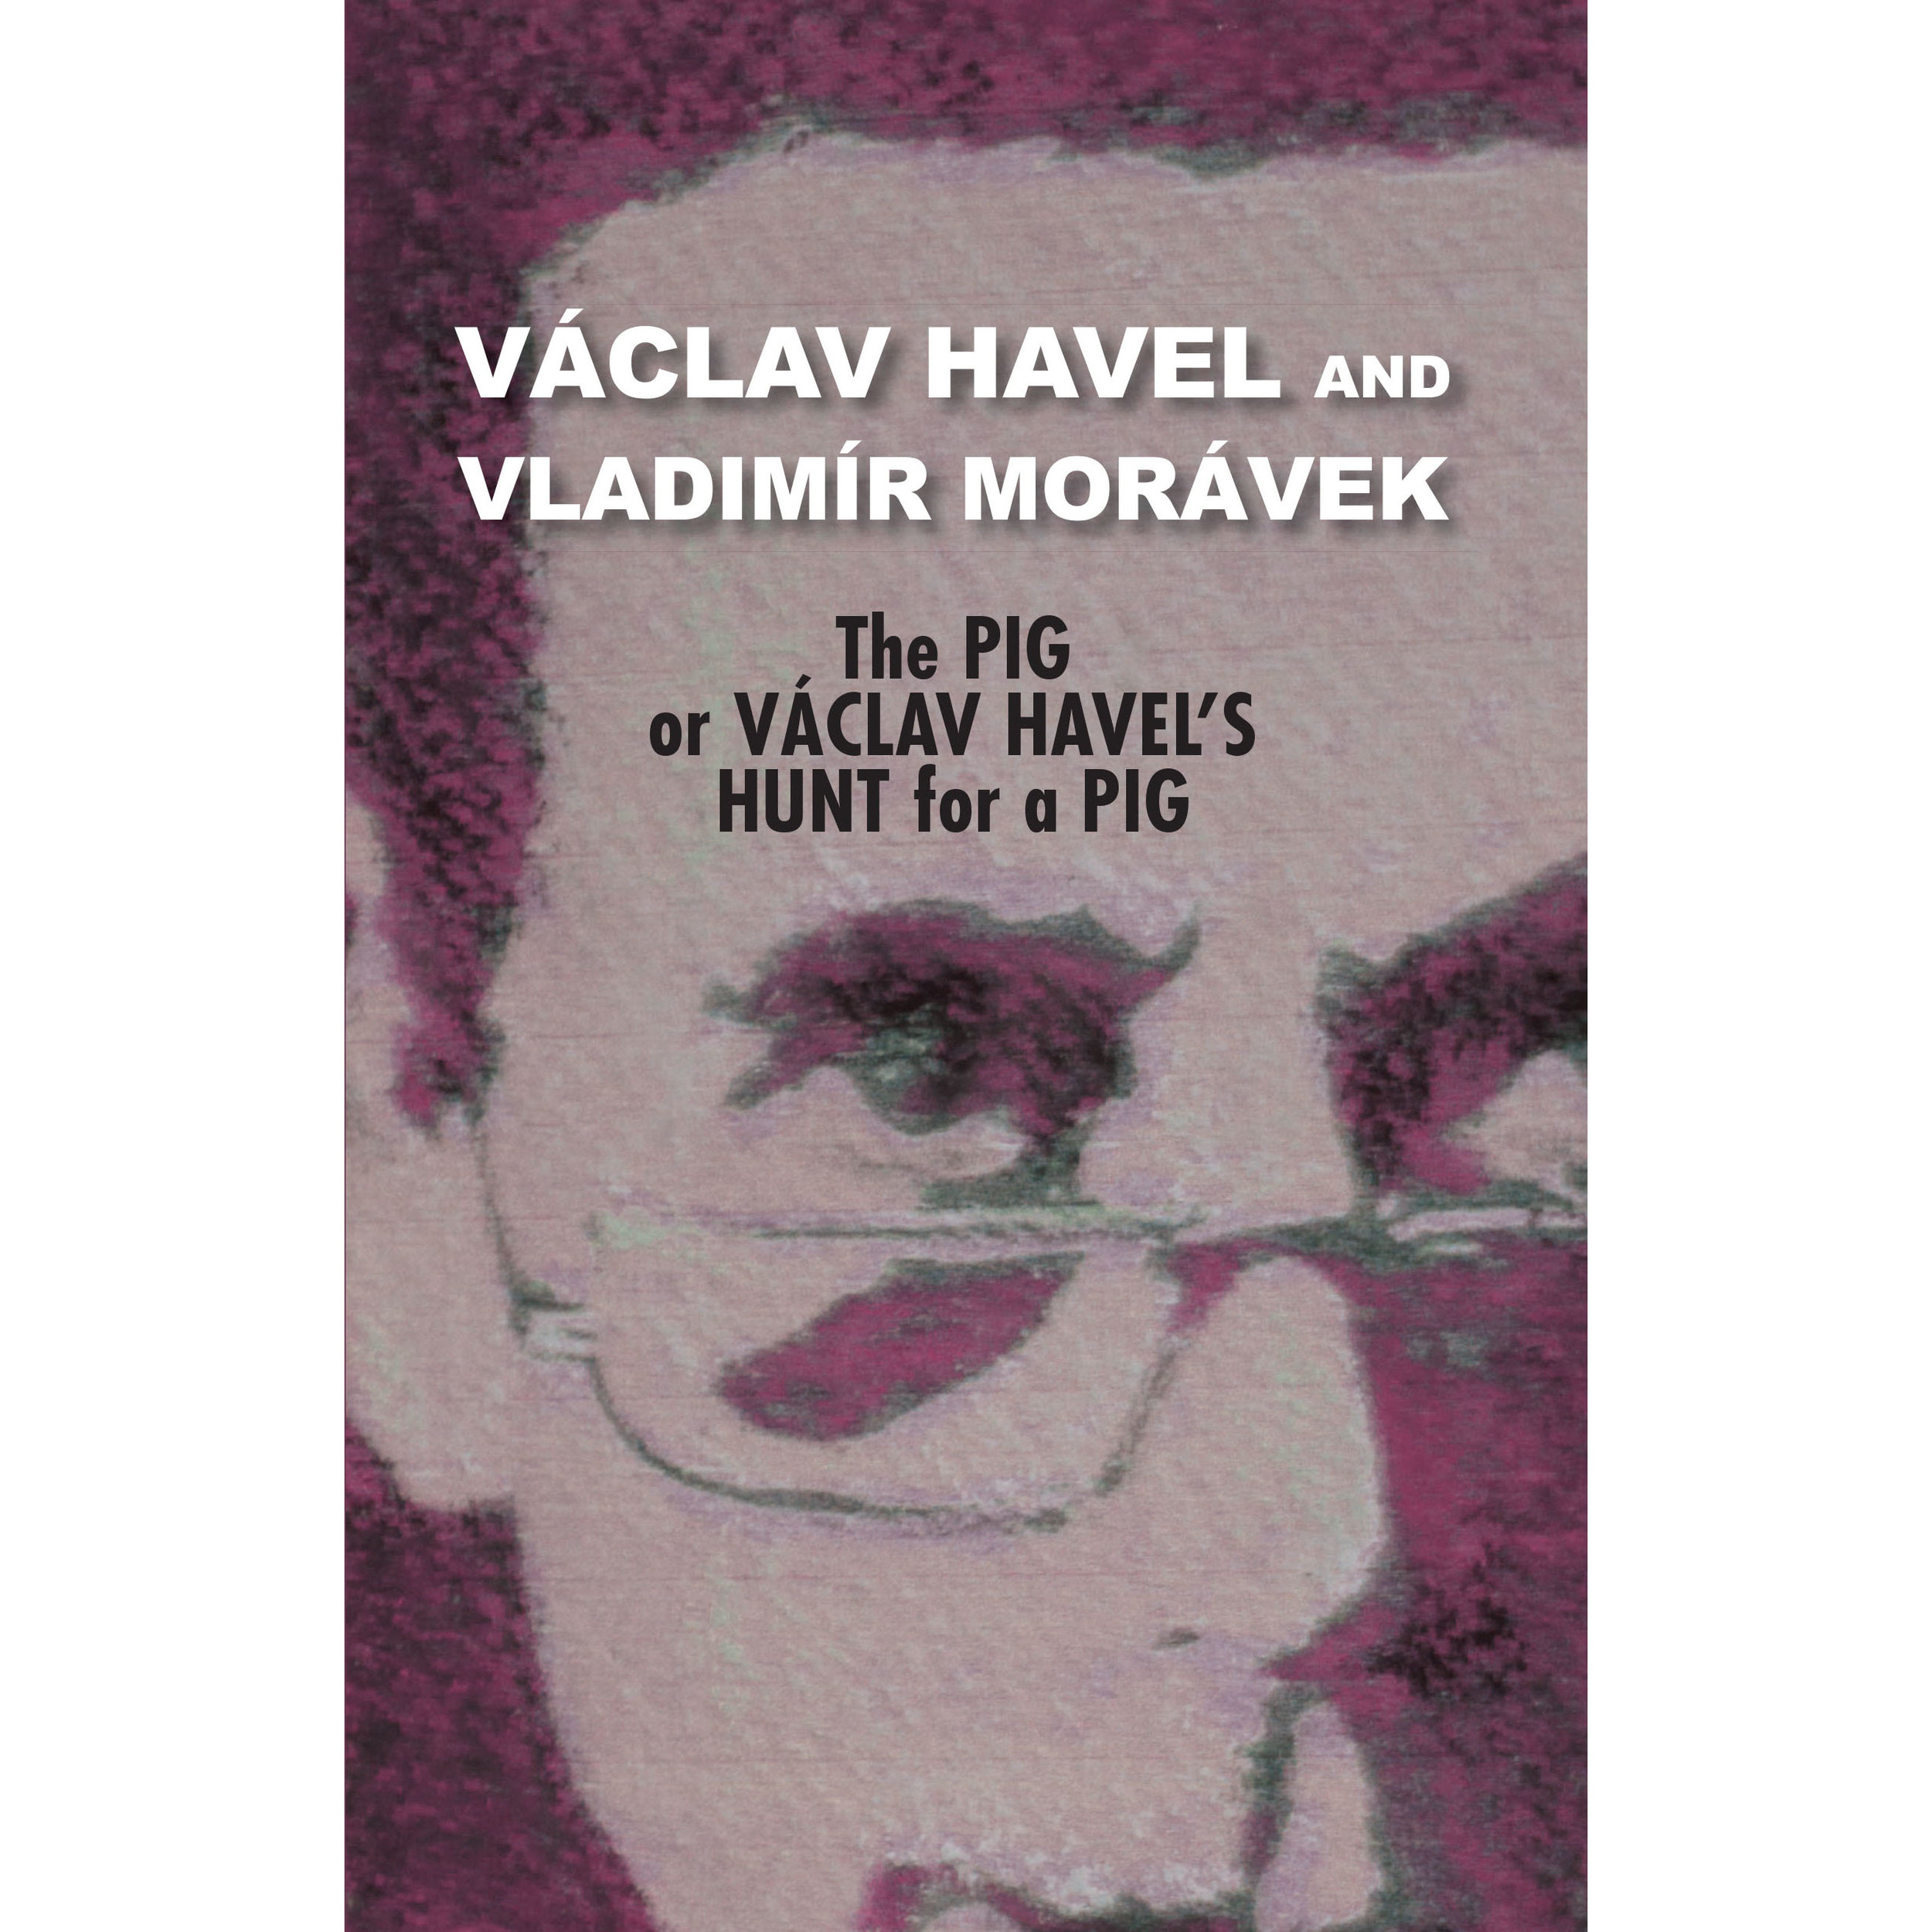 The Pig, or Václav Havel's Hunt for a Pig - Václav Havel's final theater piece, a shaggy-dog tale set at a pig roast and filled with music. Vladimír Morávek took an old dialogue of Havel's, combined it with Smetana's The Bartered Bride, and the resulting collage comments both on Communist Czechoslovakia and the post-Communist Czech era. Also included is Havel's first ever one-act: Ela, Hela, and the Hitch. Translated by Edward Einhorn. From Theater 61 Press.